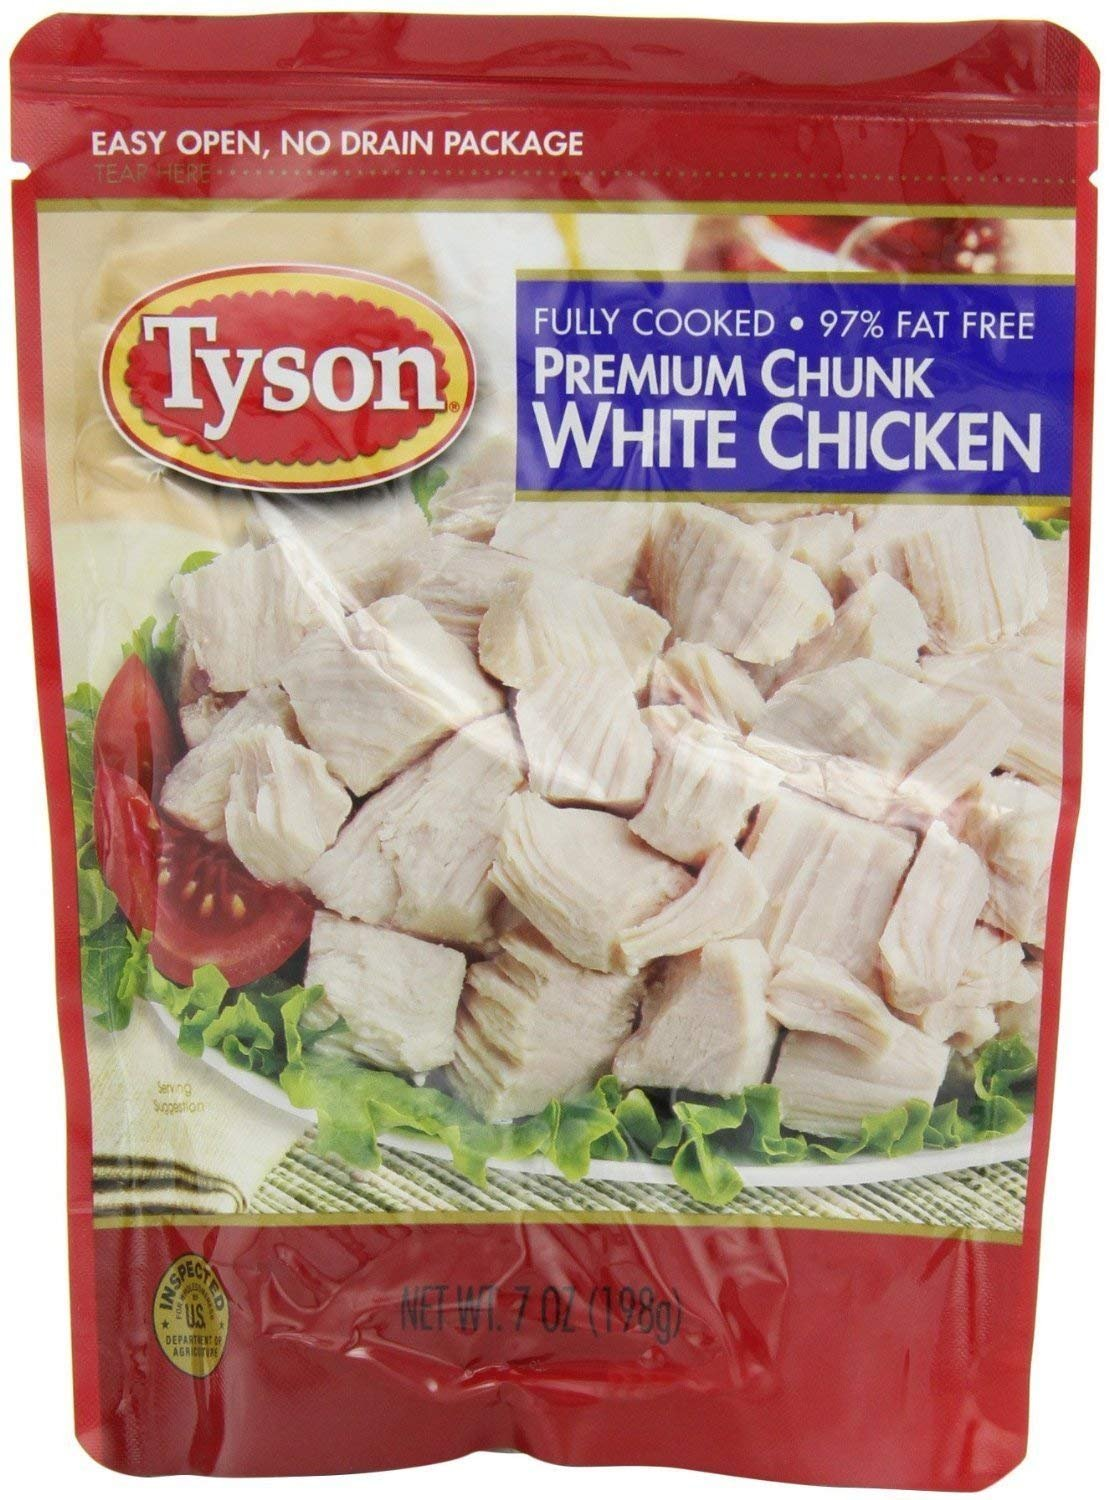 Tyson, Premium Chunk White Chicken, Fully Cooked, 97% Fat Free, 7oz Pouch (Pack of 6)